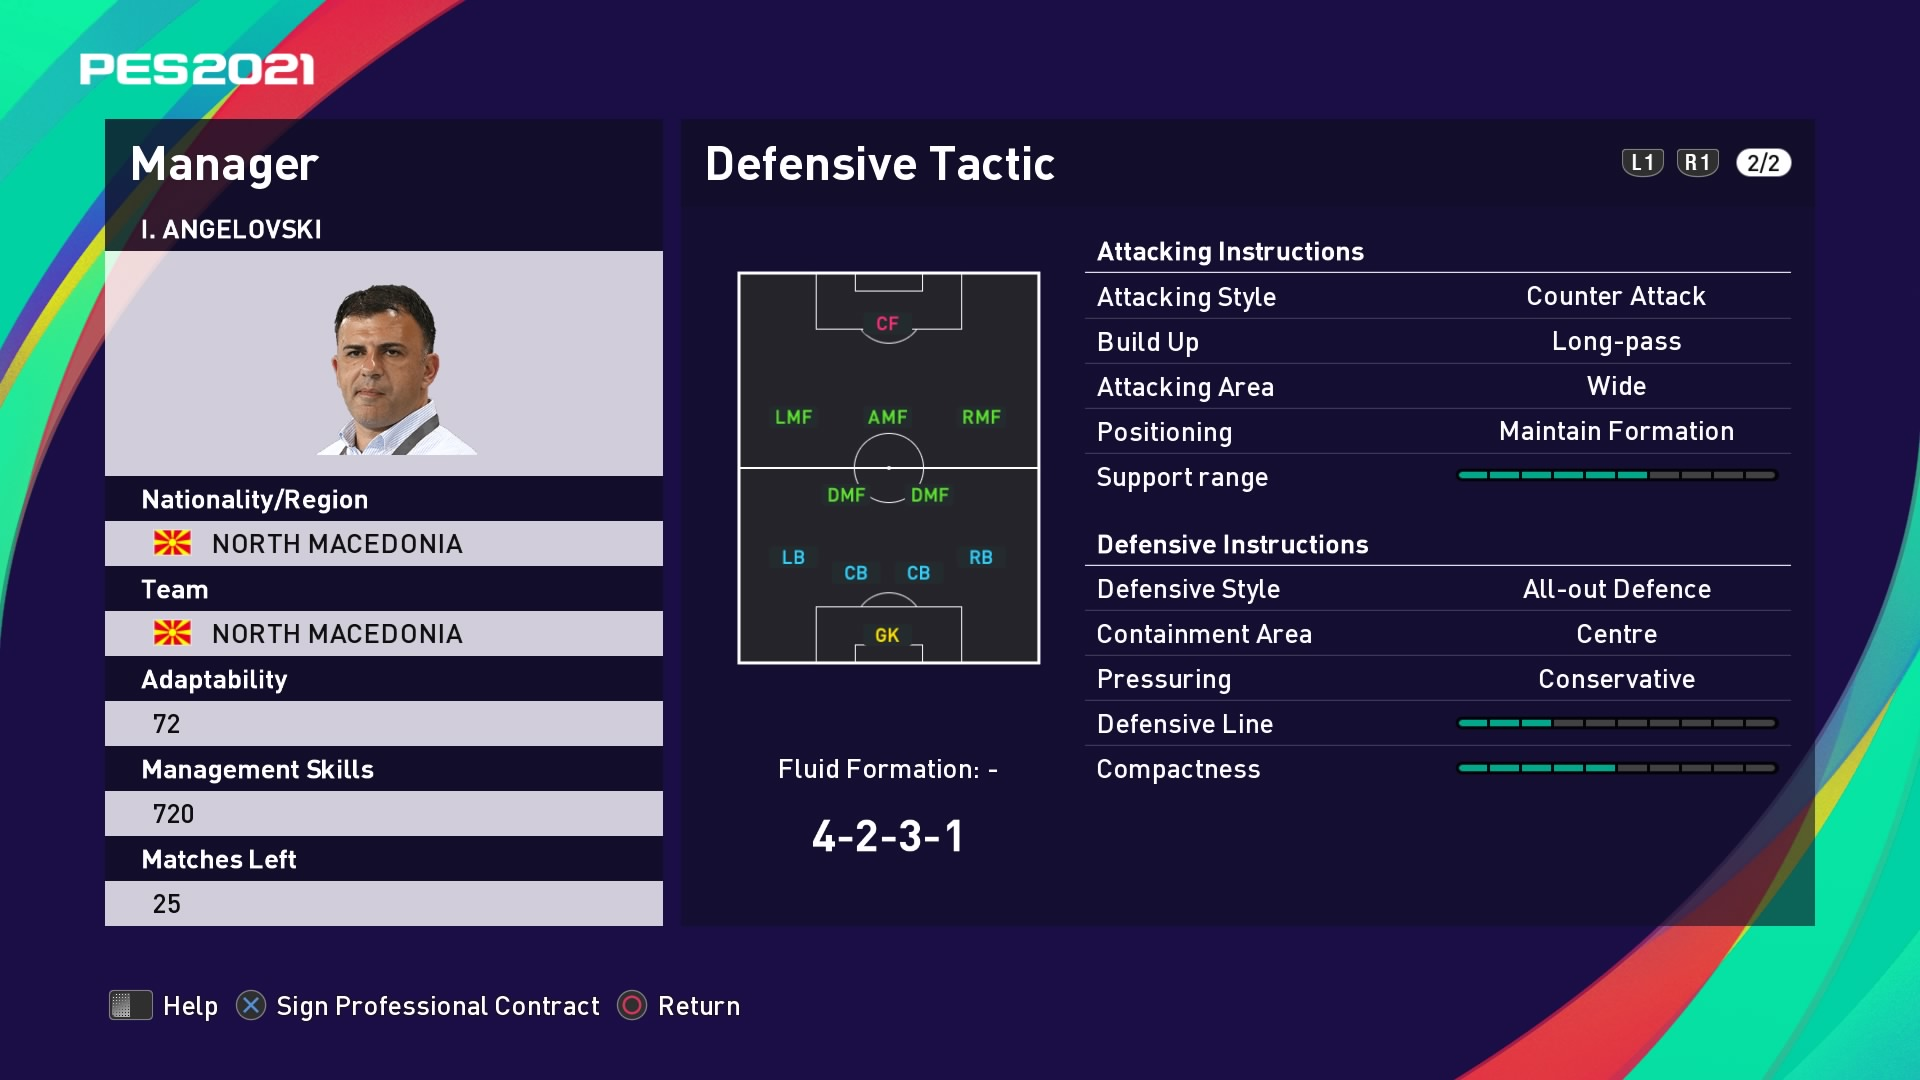 I. Angelovski (Igor Angelovski) Defensive Tactic in PES 2021 myClub